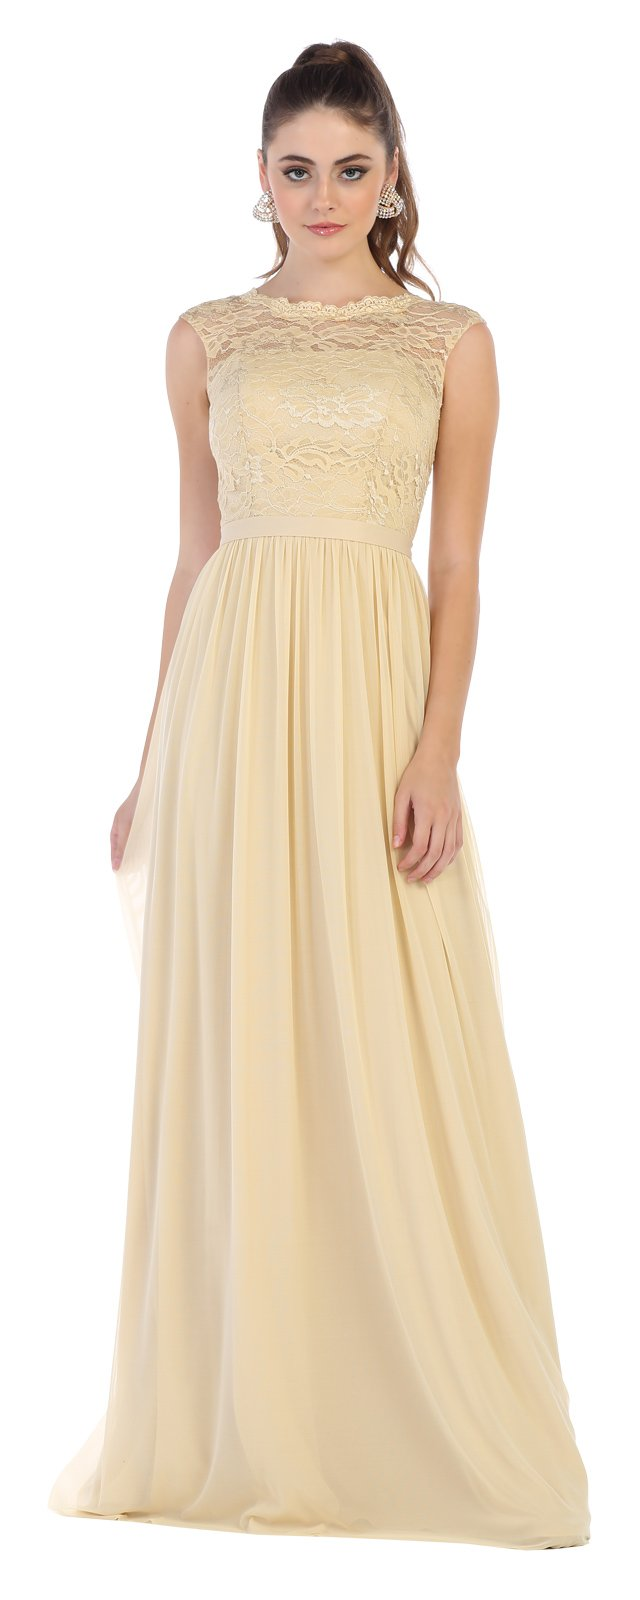 Champagne Halter Neck HOCO Dress With Metallic Skirt